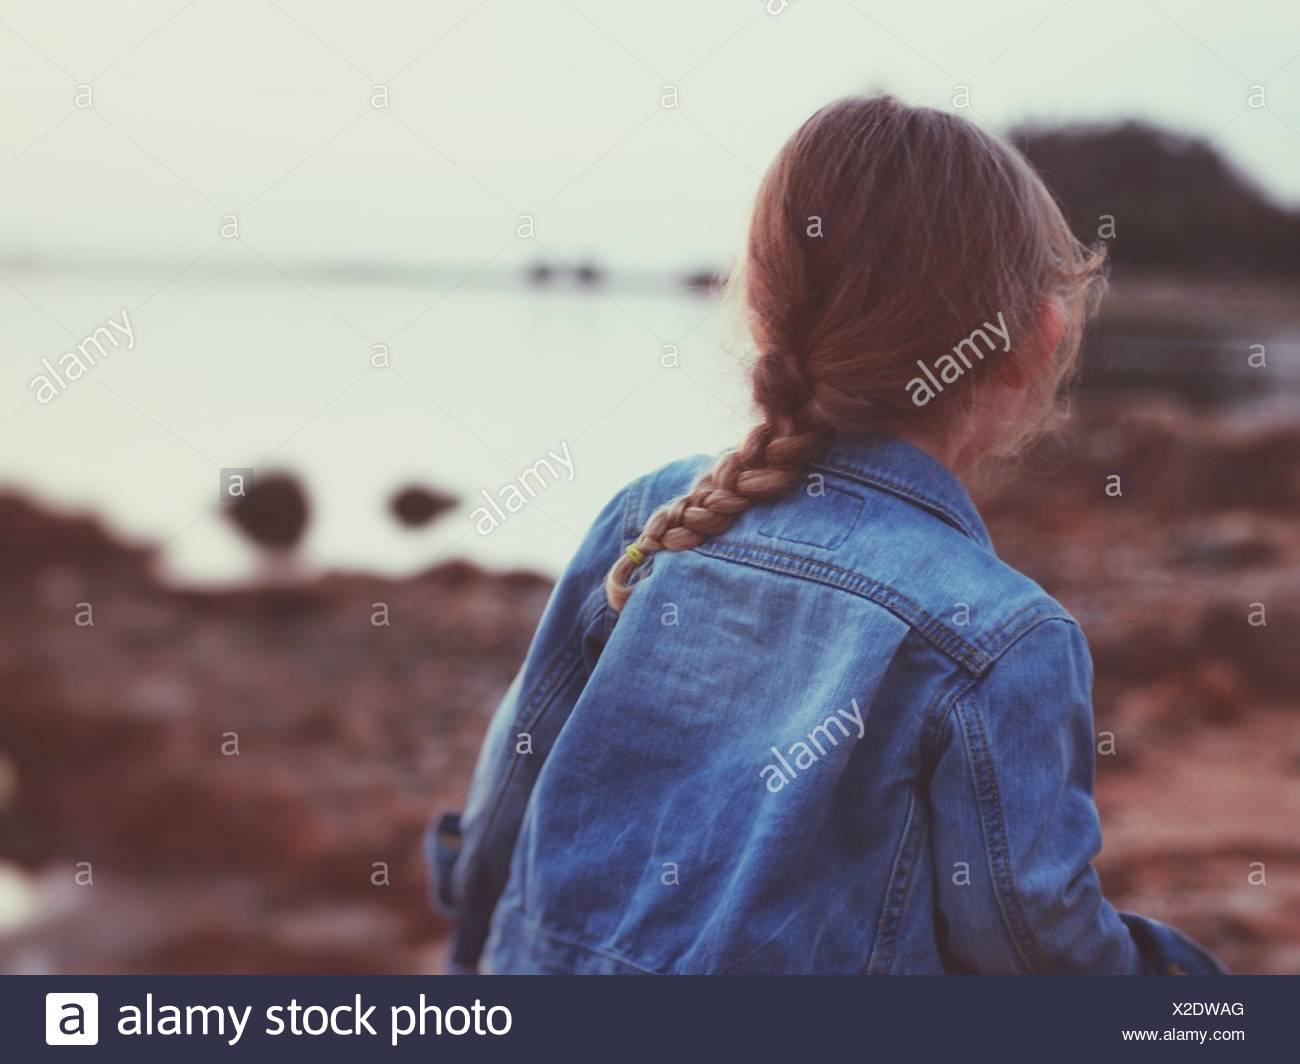 Rear View Of Girl Wearing Denim Jacket At Beach - Stock Image